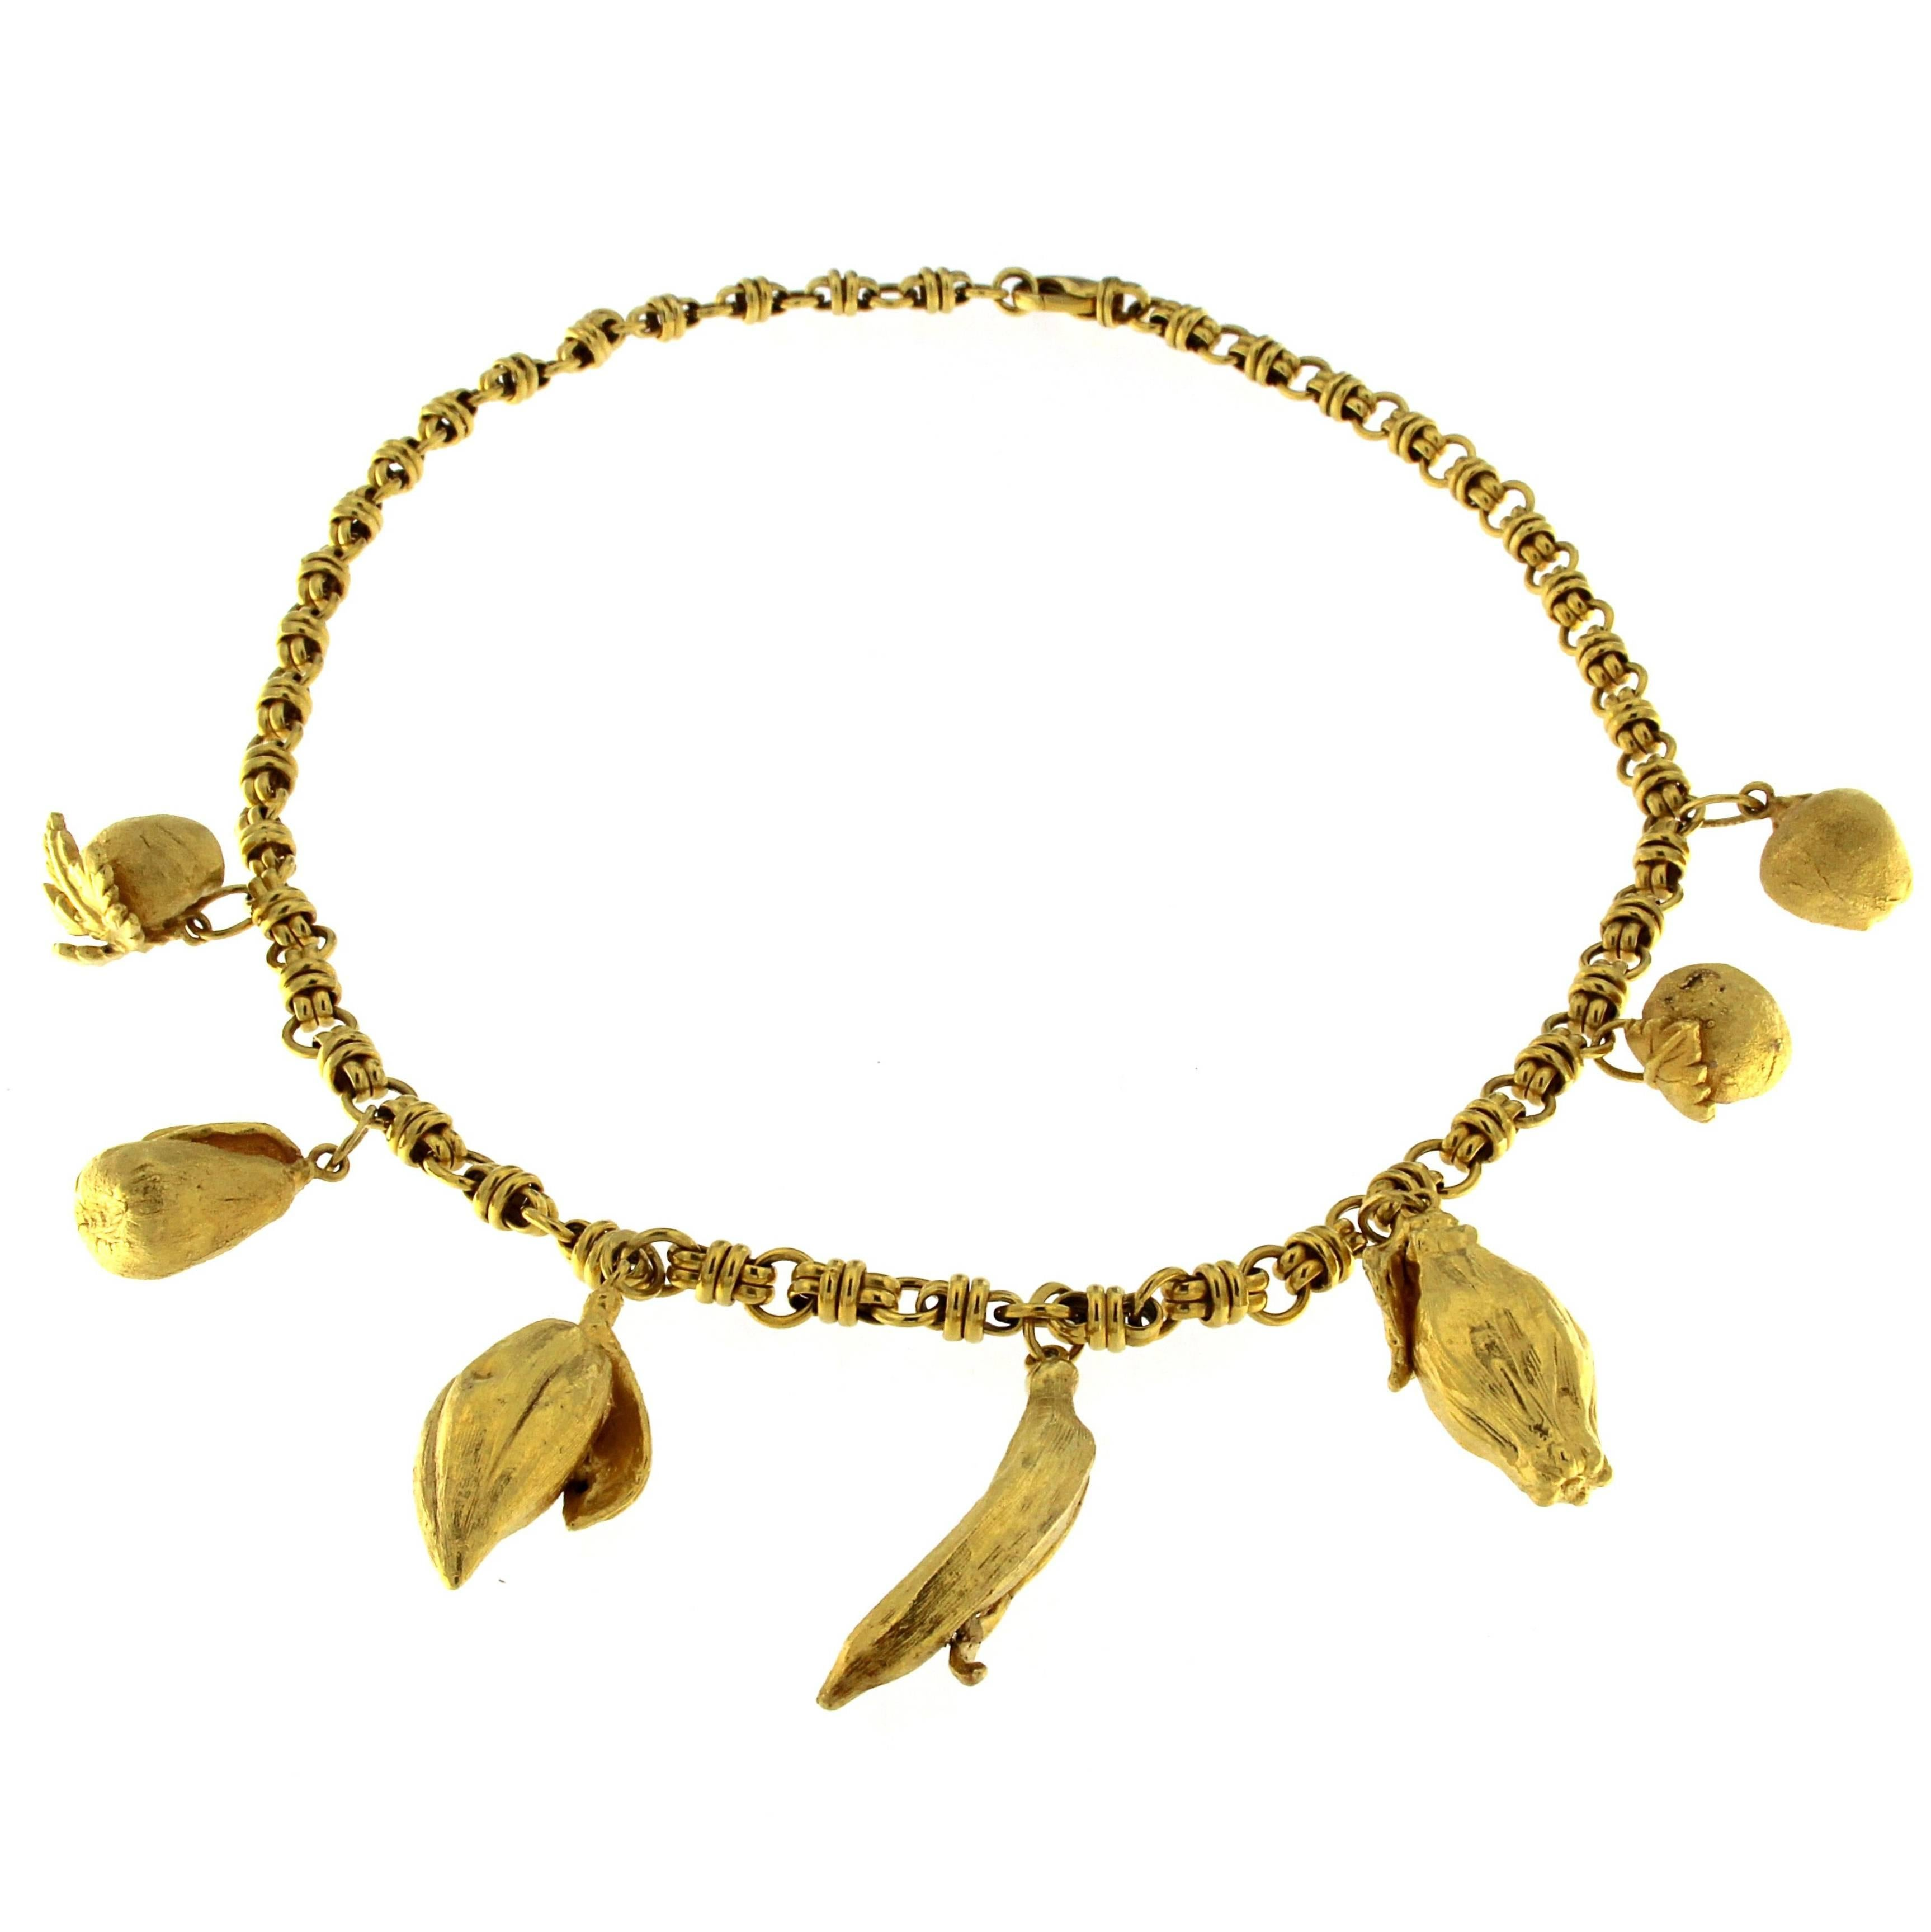 karat beautiful antique nx satyam ankletspayal ksvhs anklet gold jewellery plated women anklets